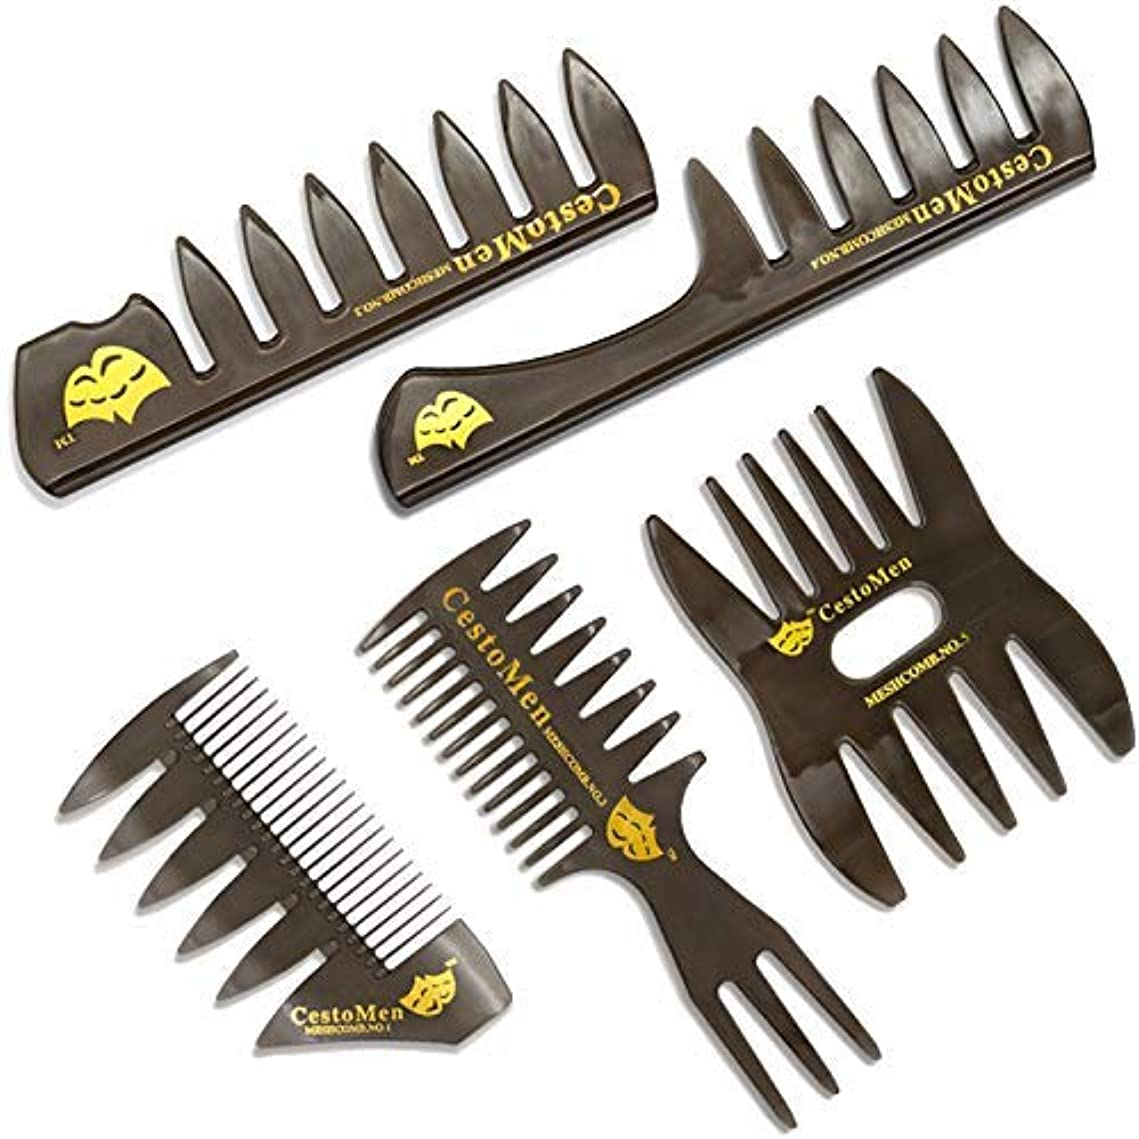 道徳の最後に液化する5 PCS Hair Comb Styling Set Barber Hairstylist Accessories - Professional Shaping & Teasing Wet Combs Tools, Anti Static Hair Brush for Men Boys [並行輸入品]